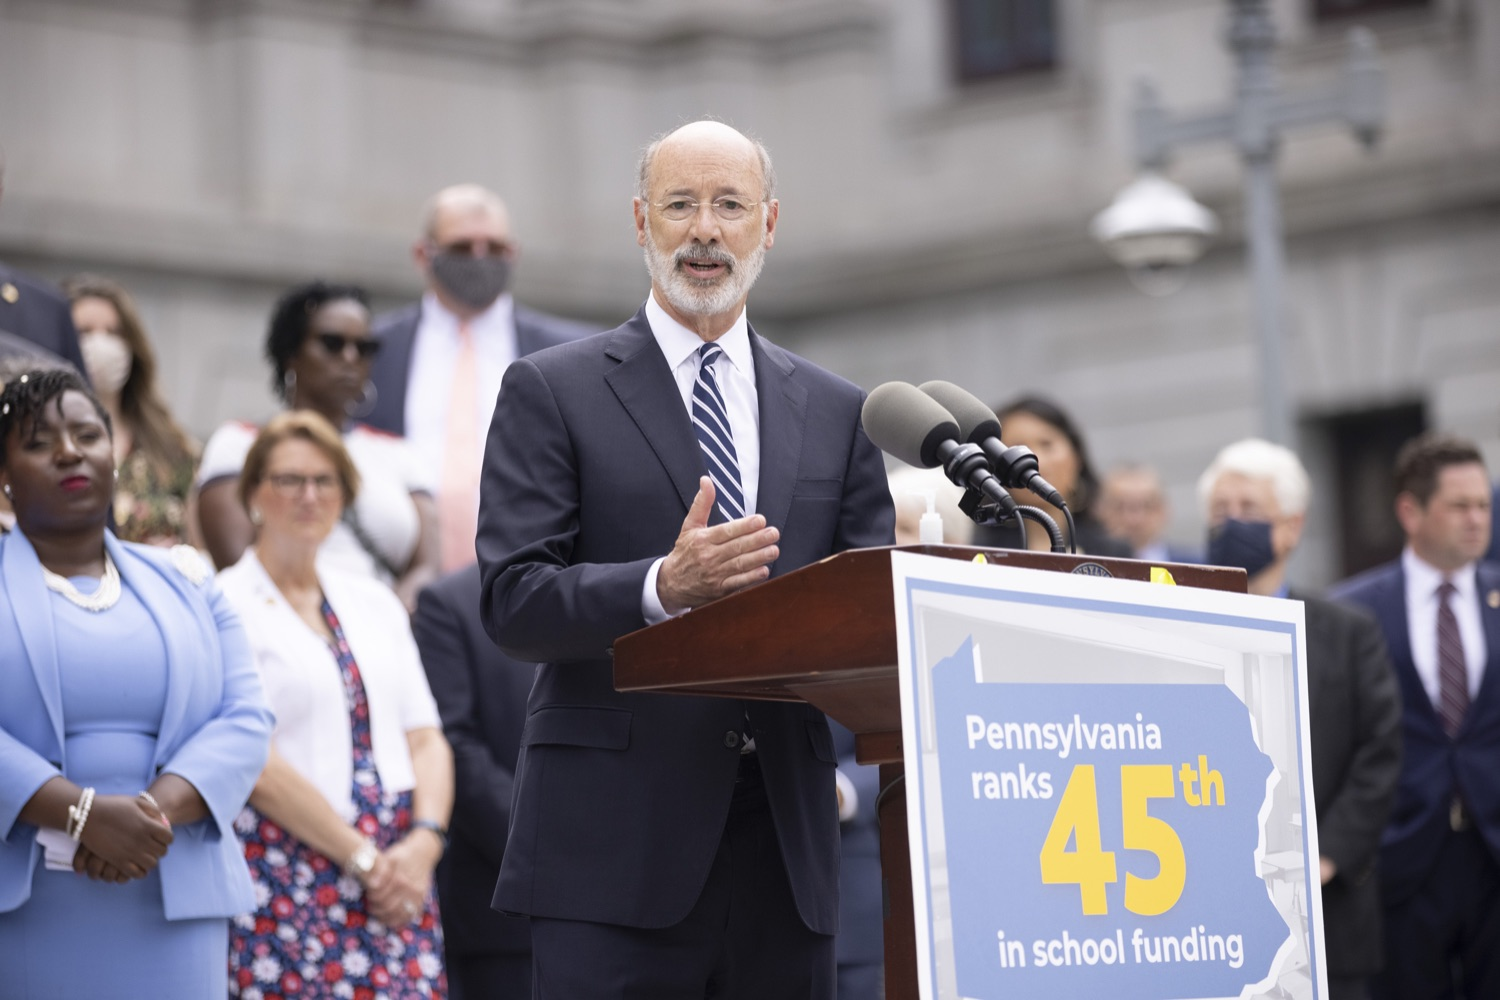 """<a href=""""https://filesource.wostreaming.net/commonwealthofpa/photo/18810_gov_fairFunding_dz_023.jpg"""" target=""""_blank"""">⇣Download Photo<br></a>Pennsylvania Governor Tom Wolf speaking at the event. Continuing their commitment to students and working families, Governor Tom Wolf and House and Senate Democratic Leaders held a Capitol press conference today to highlight the injustice in the states school funding system and call for fair funding of every district.  Harrisburg, PA   June 8, 2021"""